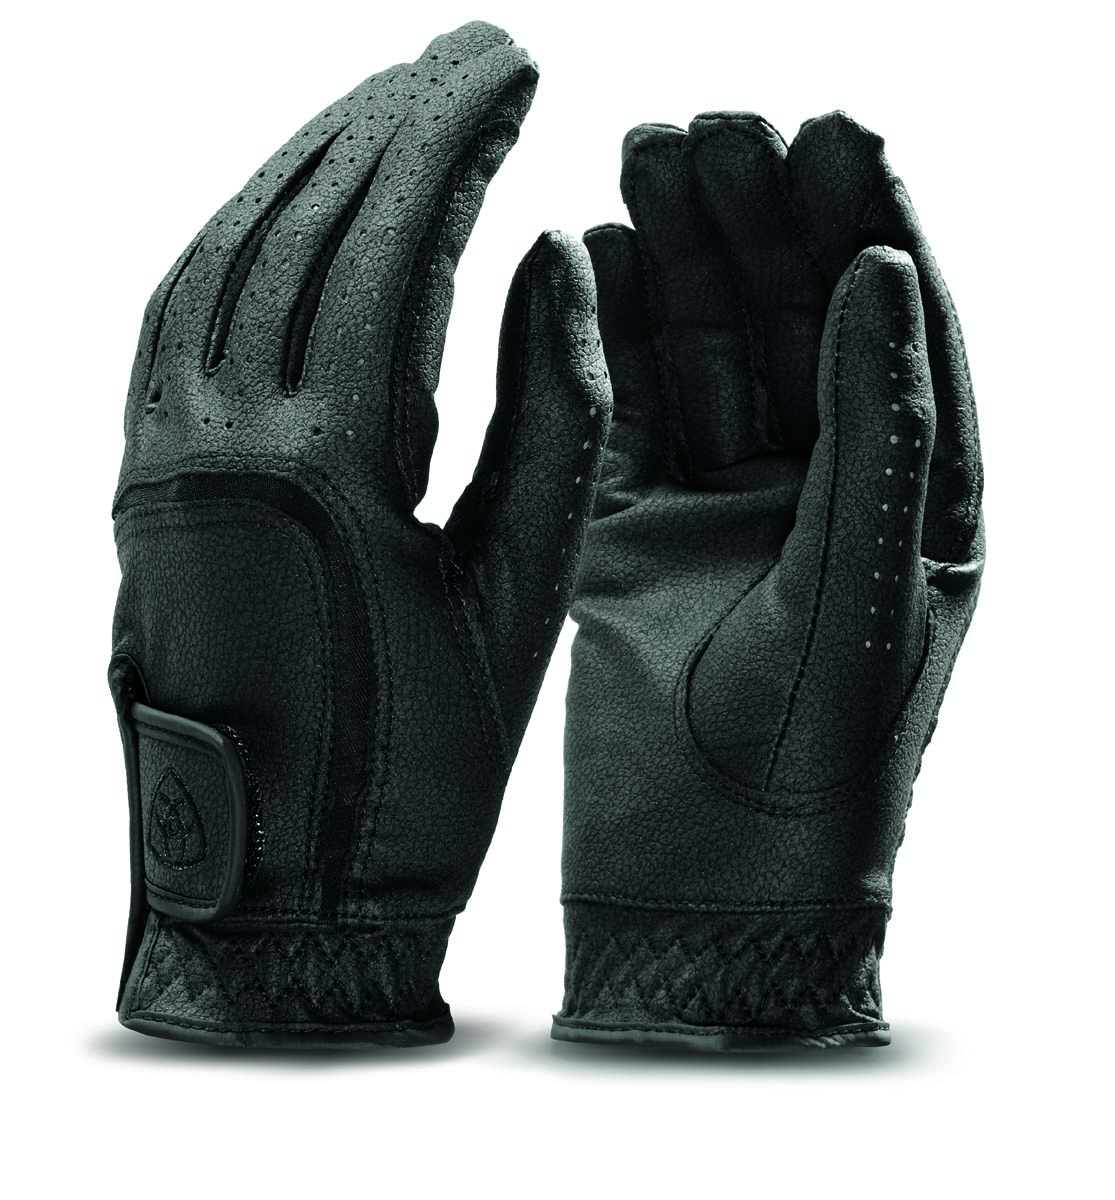 ARIAT Pro Contact Riding Glove